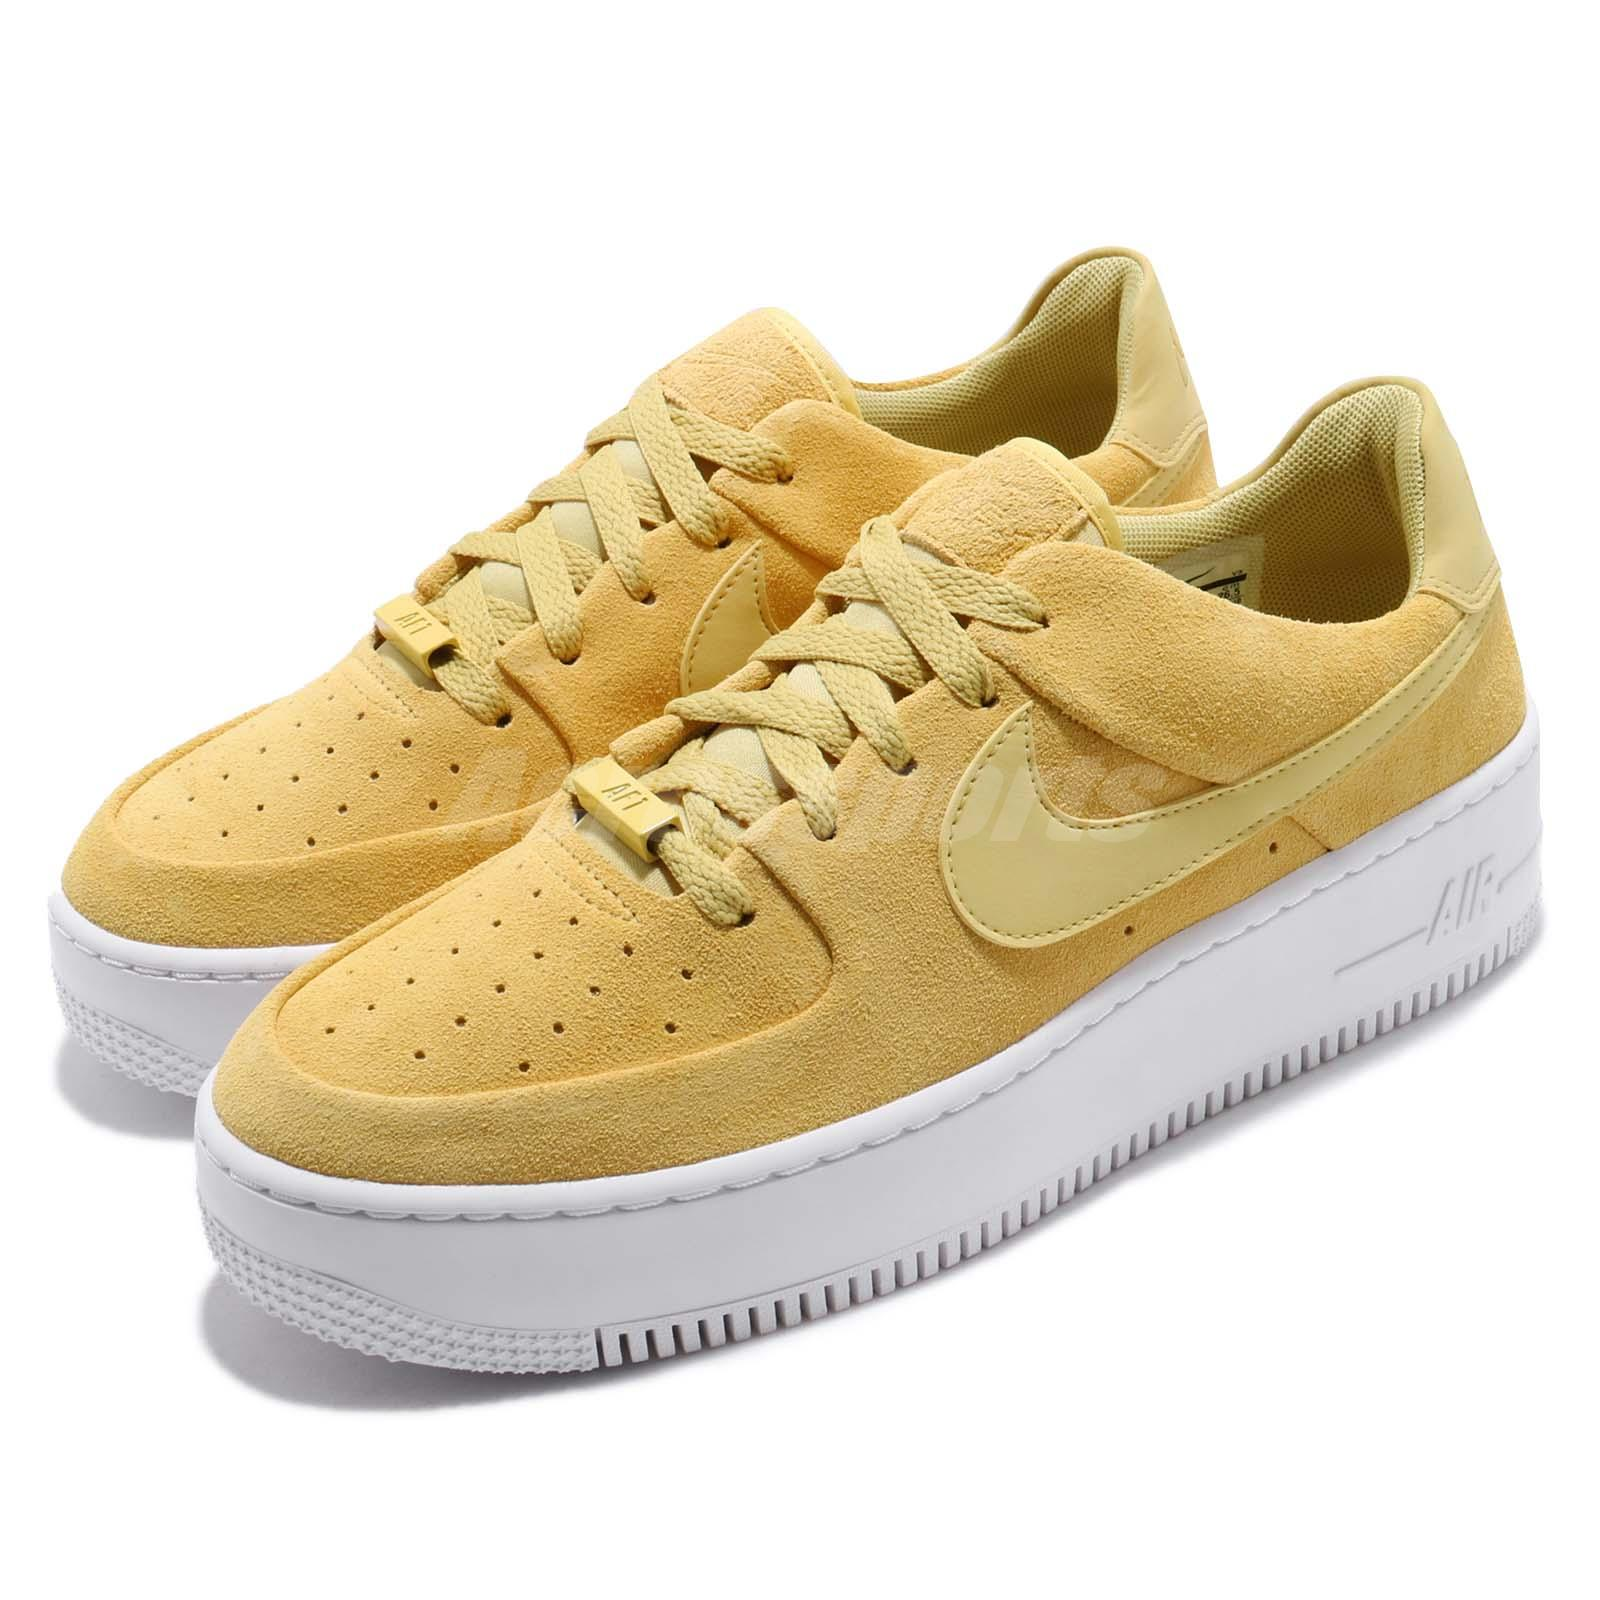 watch 3fa7f 54840 Details about Nike Wmns AF1 Sage Low Celery Yellow Womens Casual Shoes Air  Force 1 AR5339-300